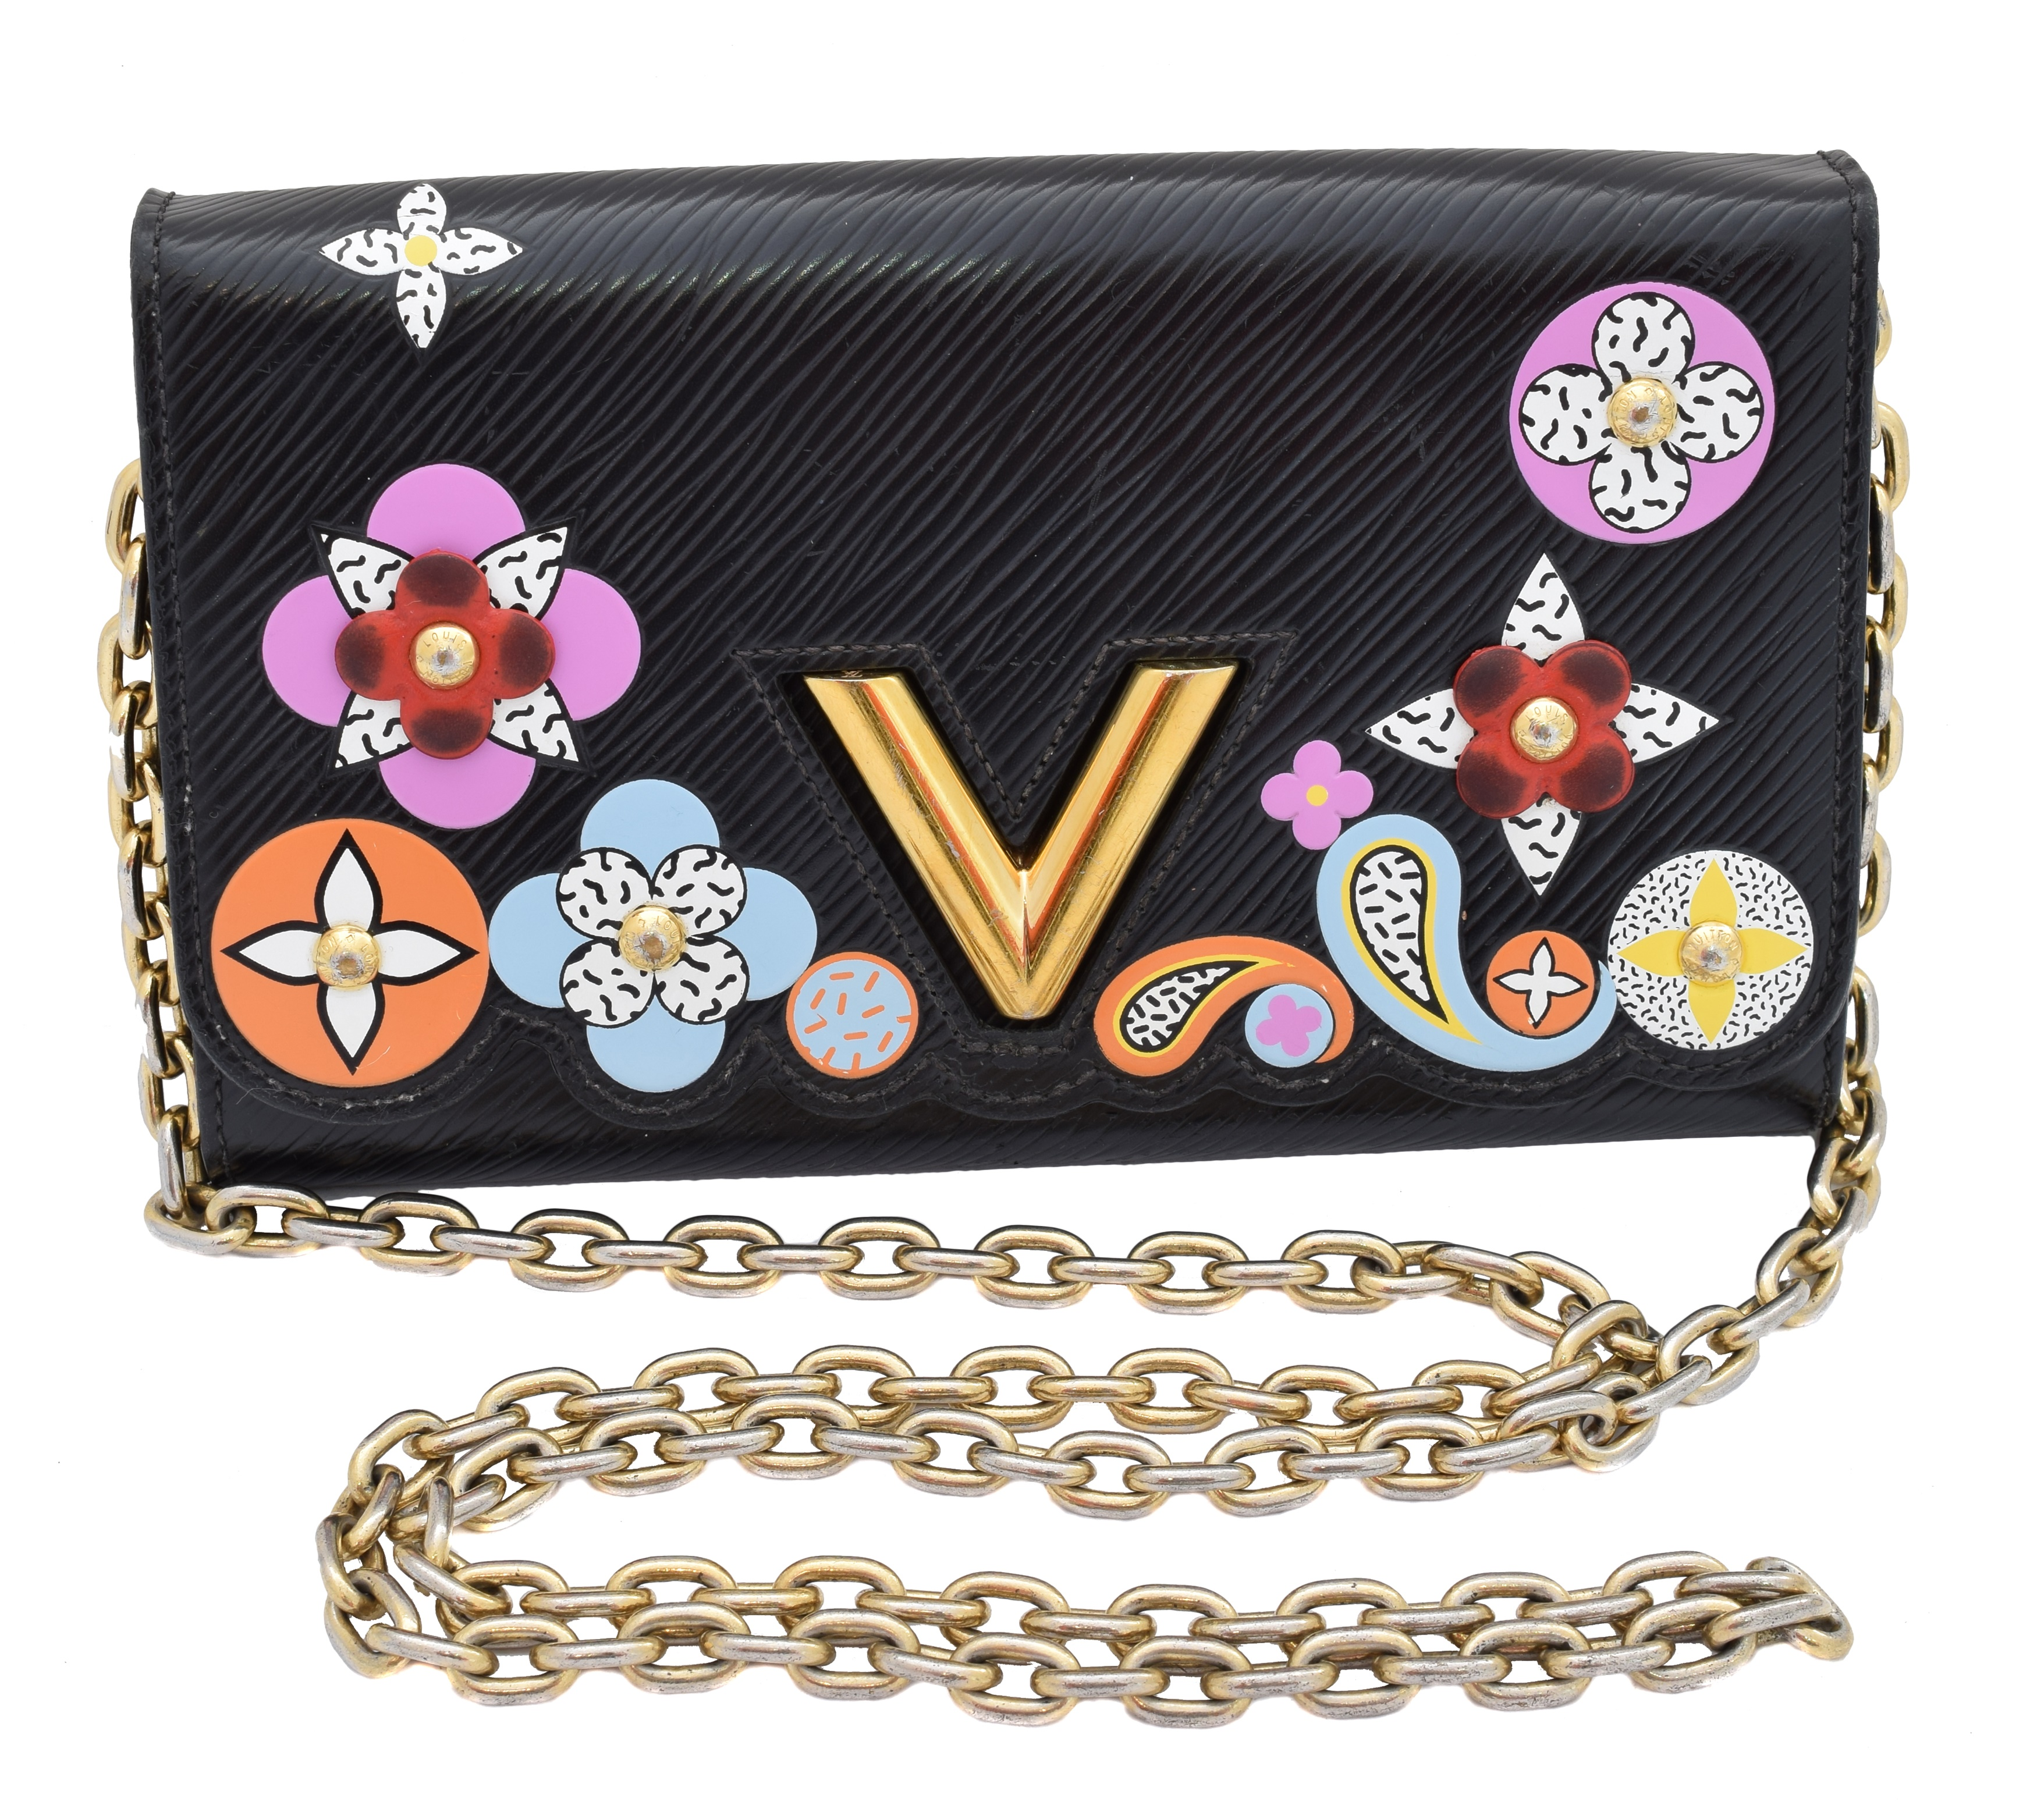 A Louis Vuitton Twist Blossom Edition Wallet on Chain Shoulder Bag, circa 2017,